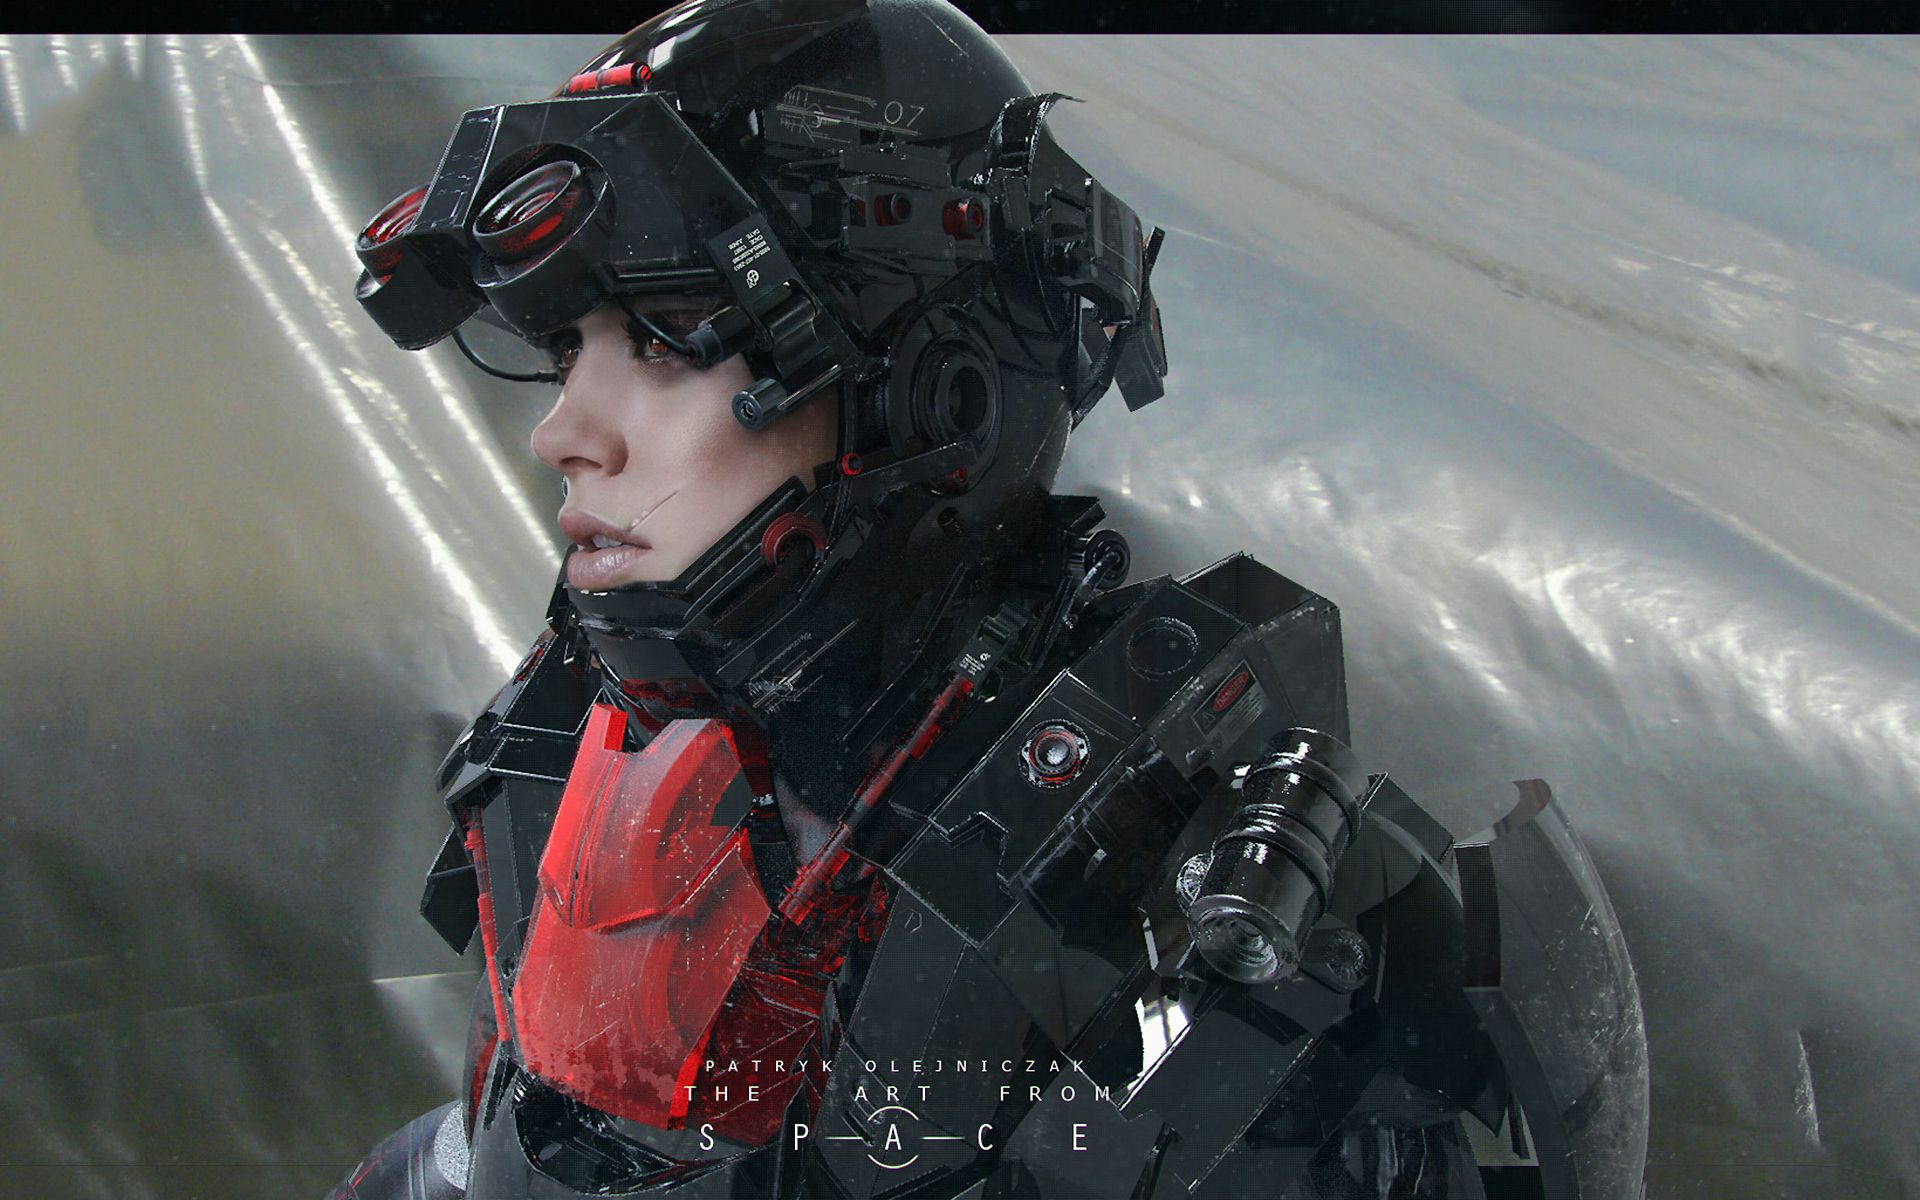 Fantasy Future Girl Soldier Wallpapers Pictures Star Citizen Combat Suit Sci Fi